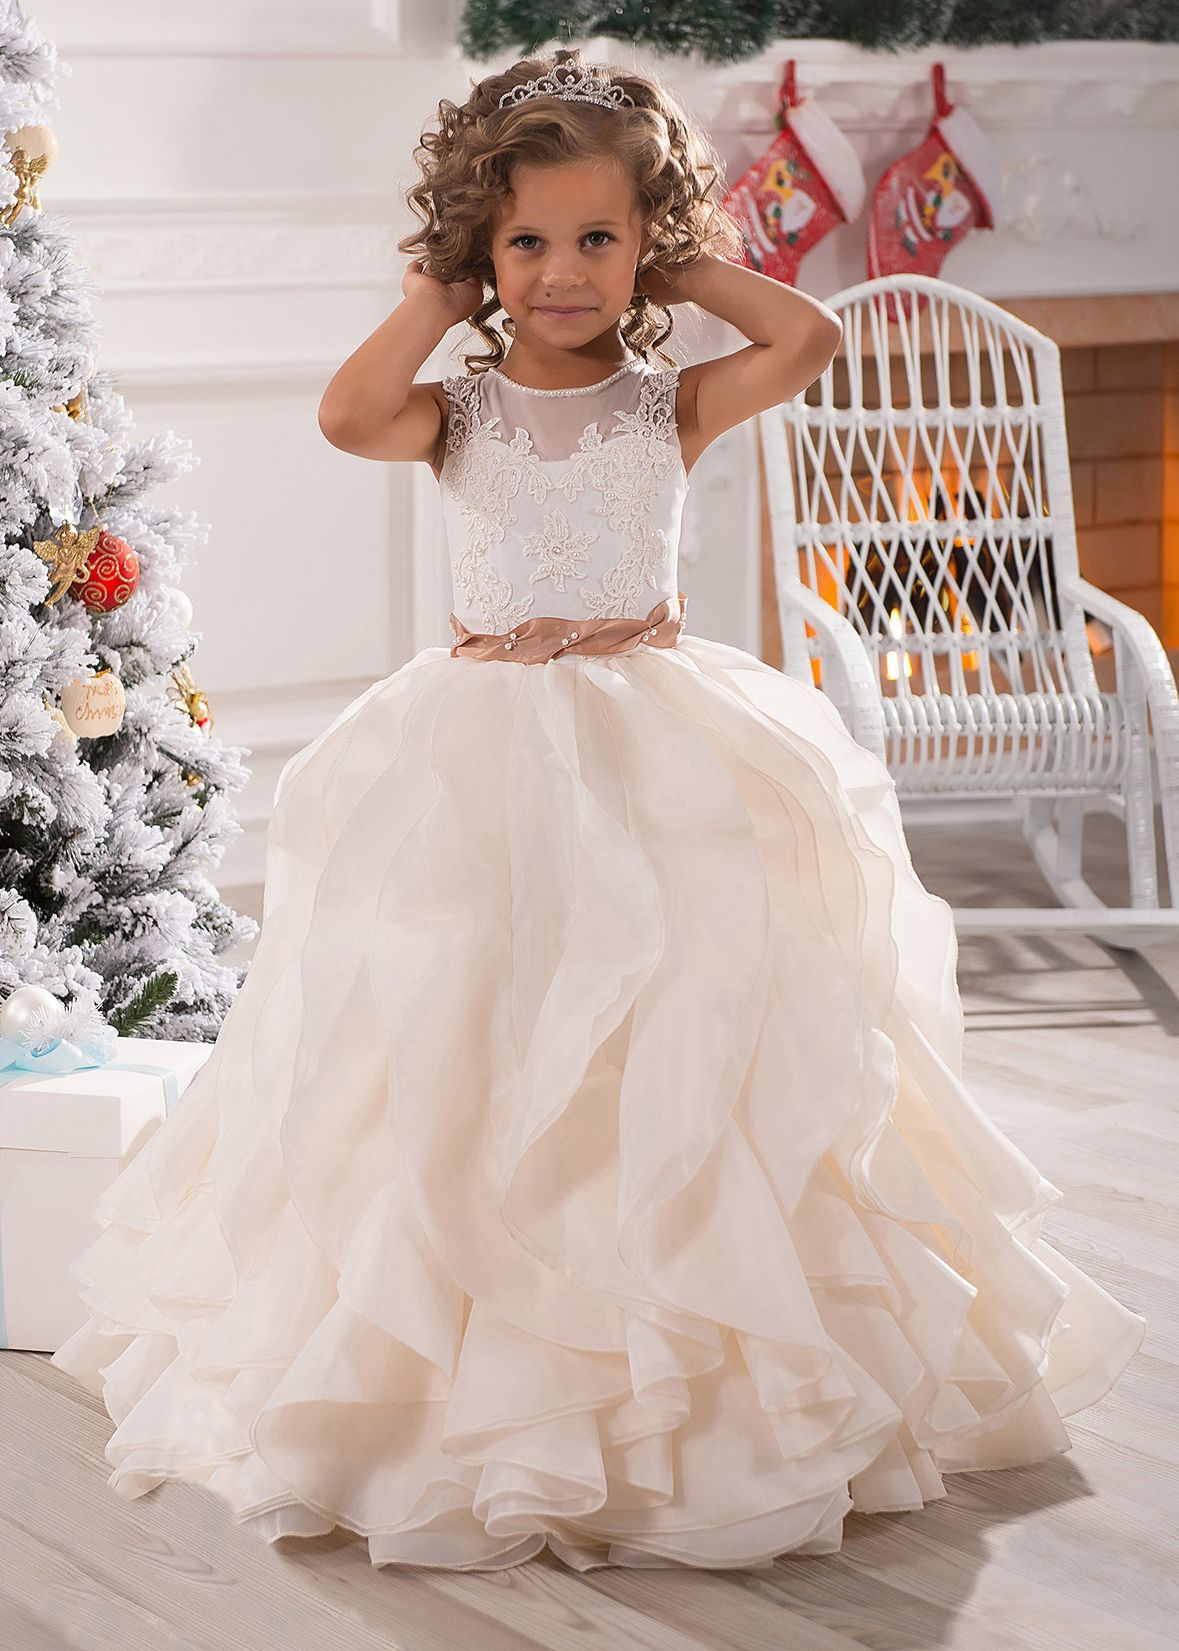 Ivory Lace Champagne Organza Ruffle Long Flower Girl Dress  3df60b3dcf8e